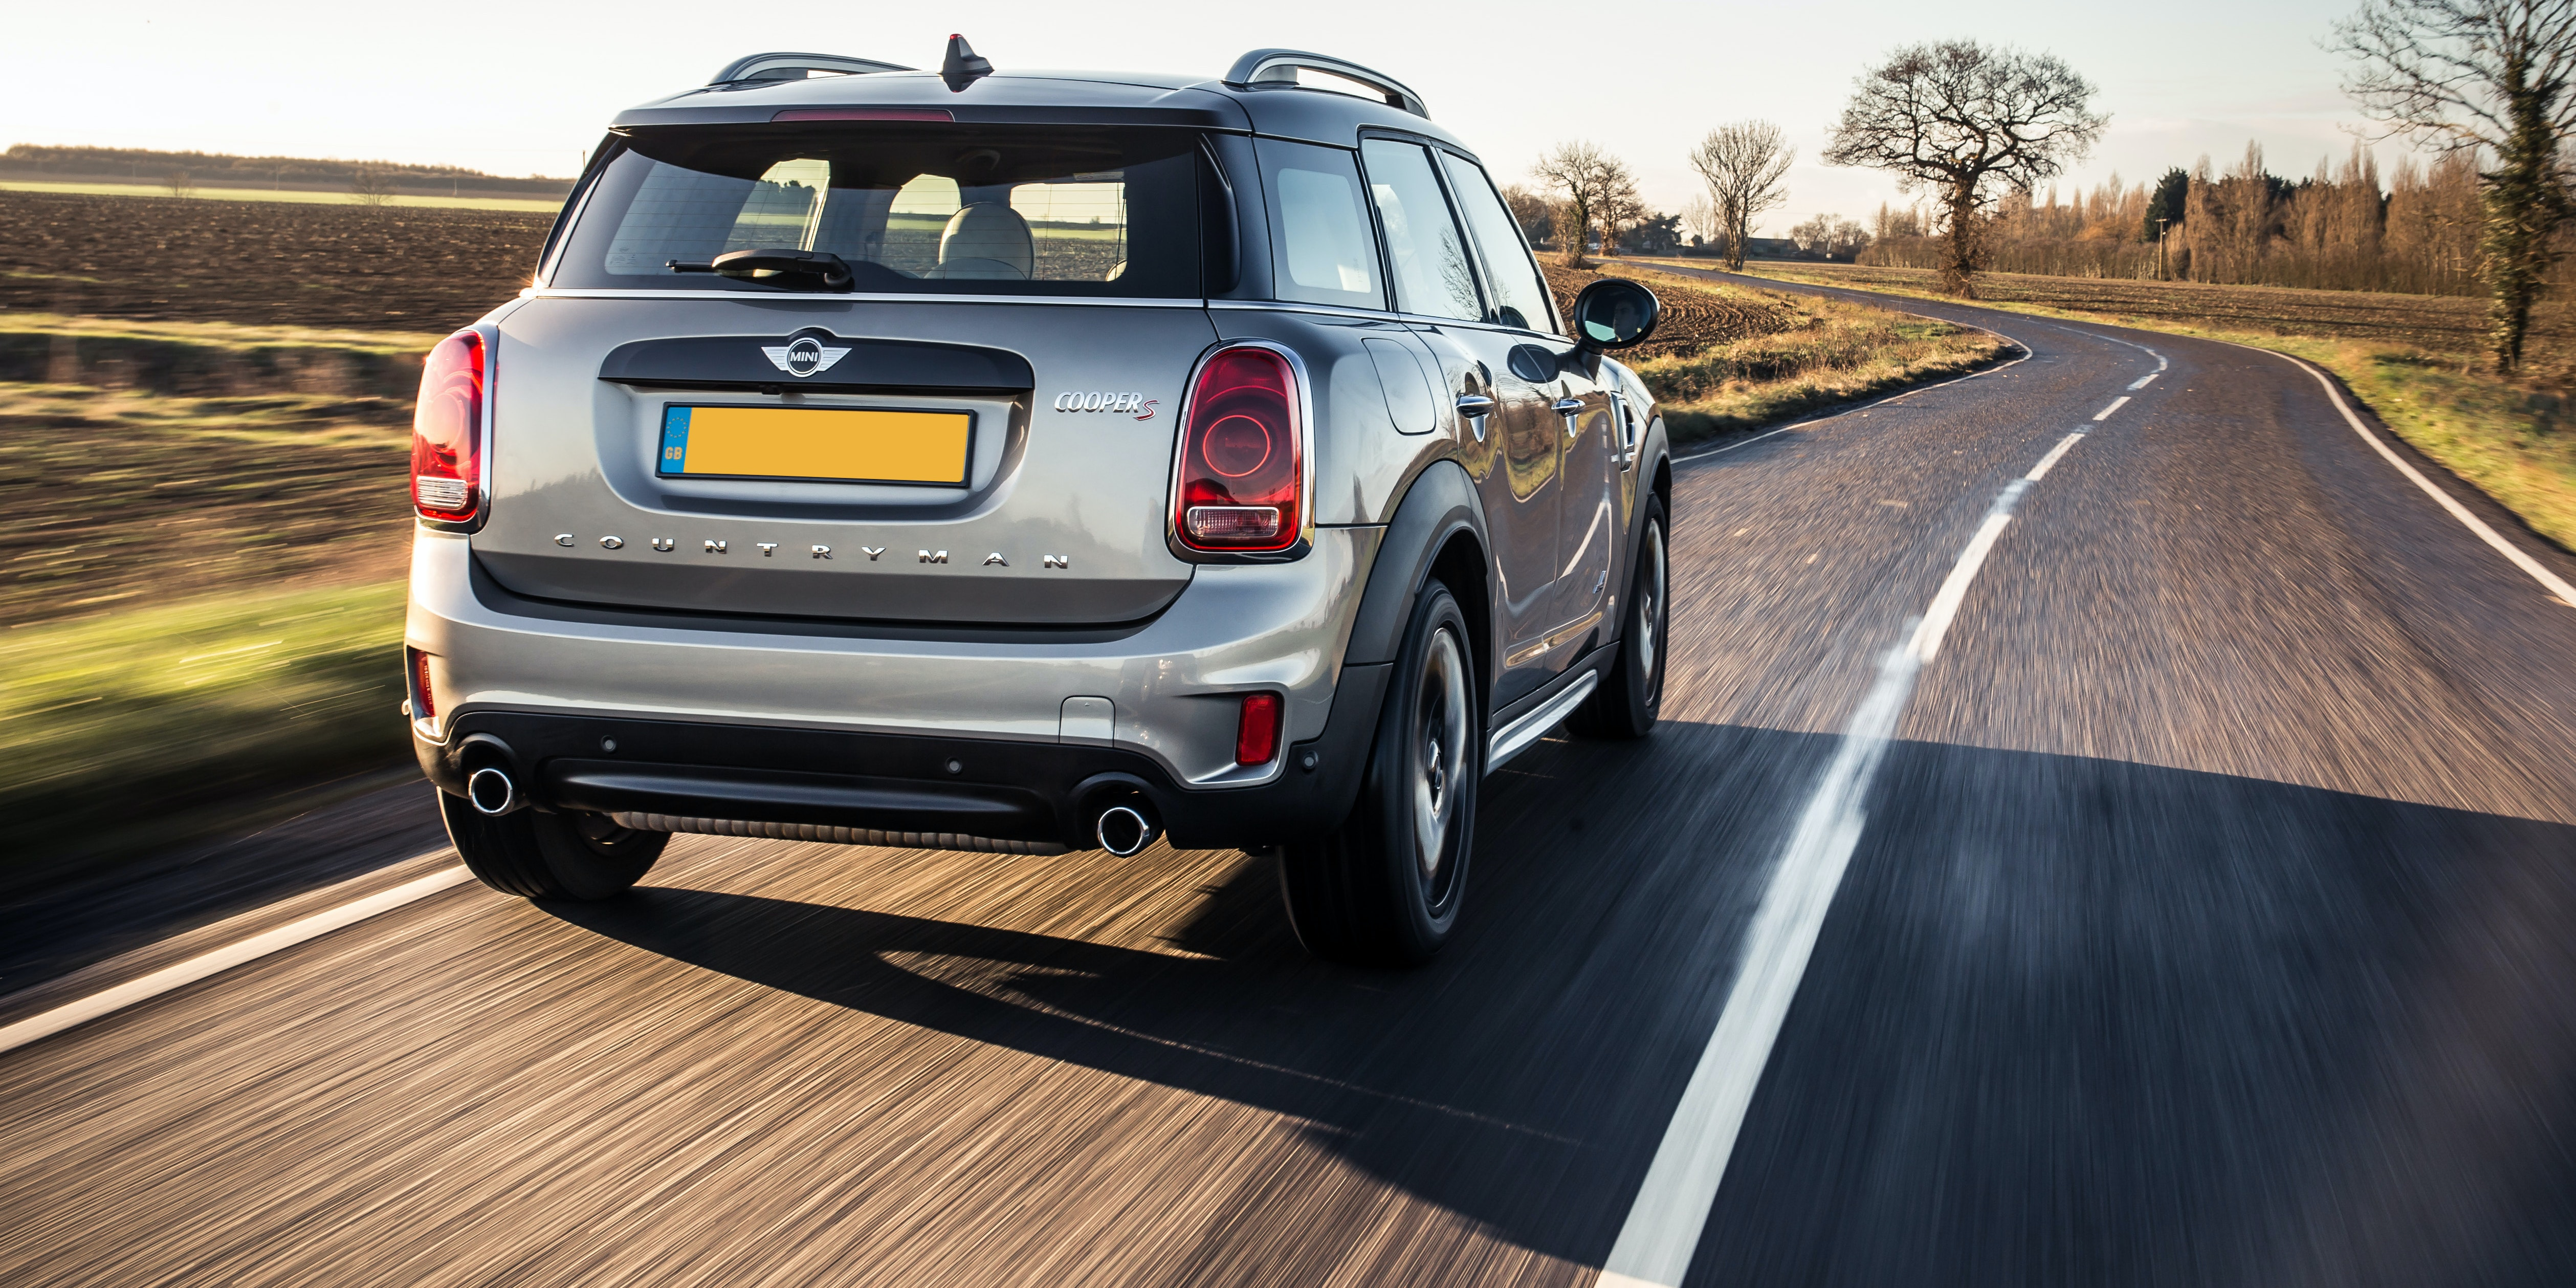 The Mini Countryman is noisier at a cruise than alternatives